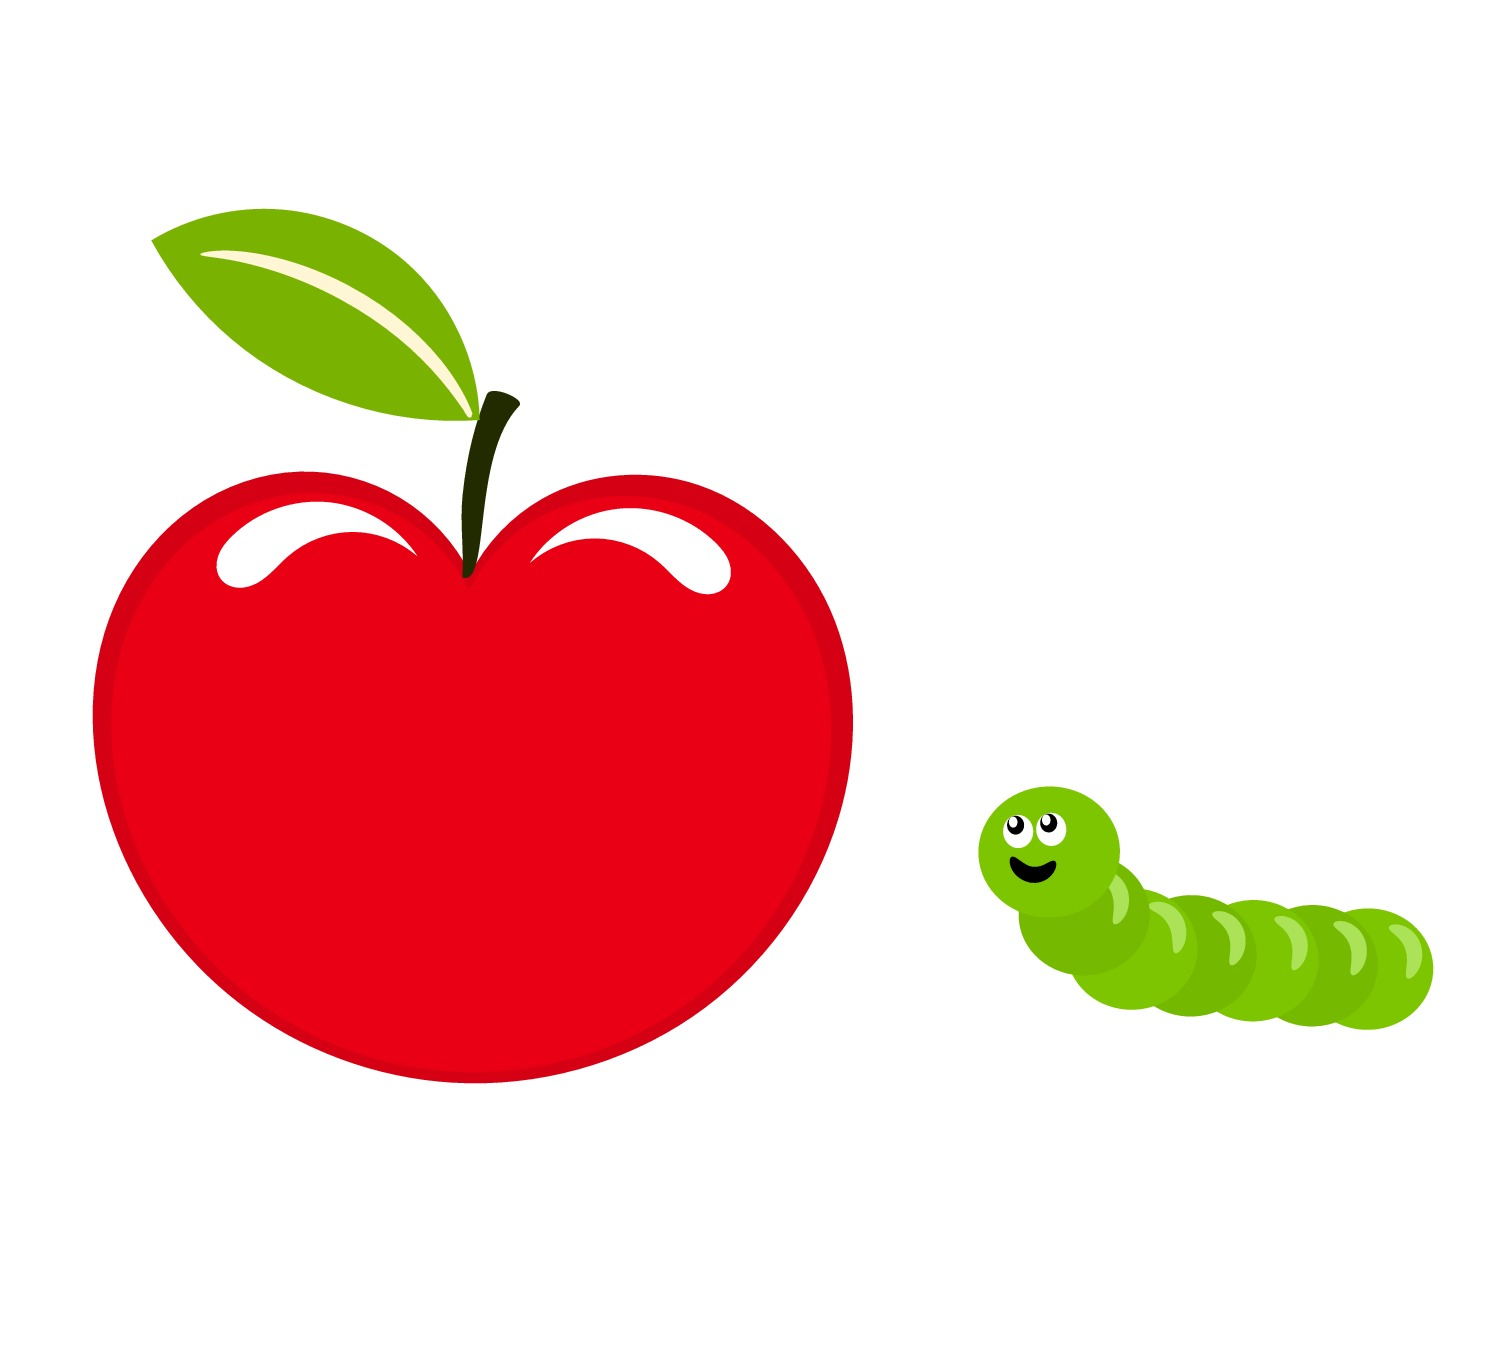 Caterpillar eating apple